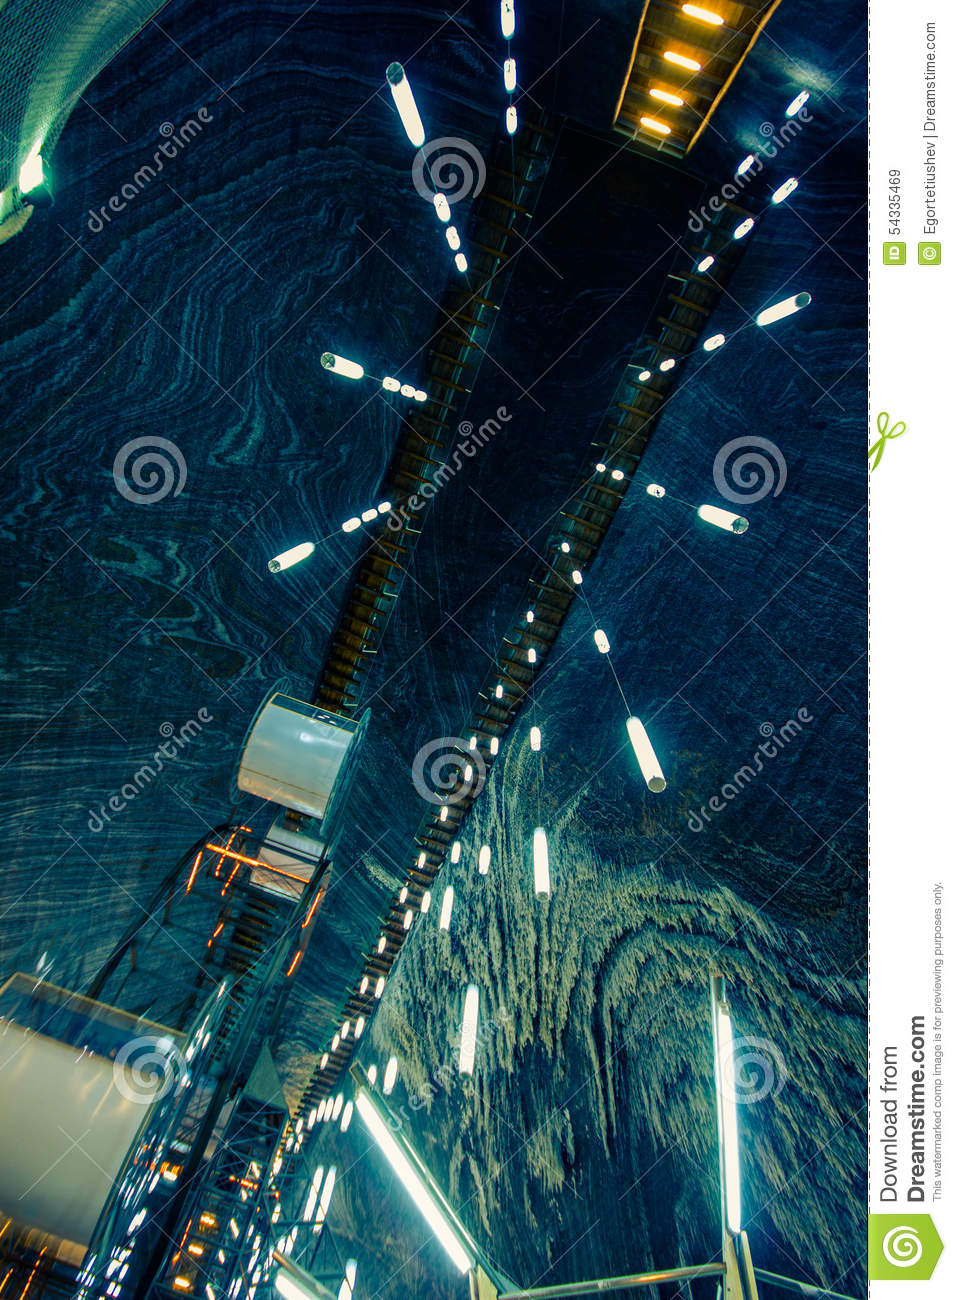 Dome salt mines  stock image  Image of beautiful, mineral